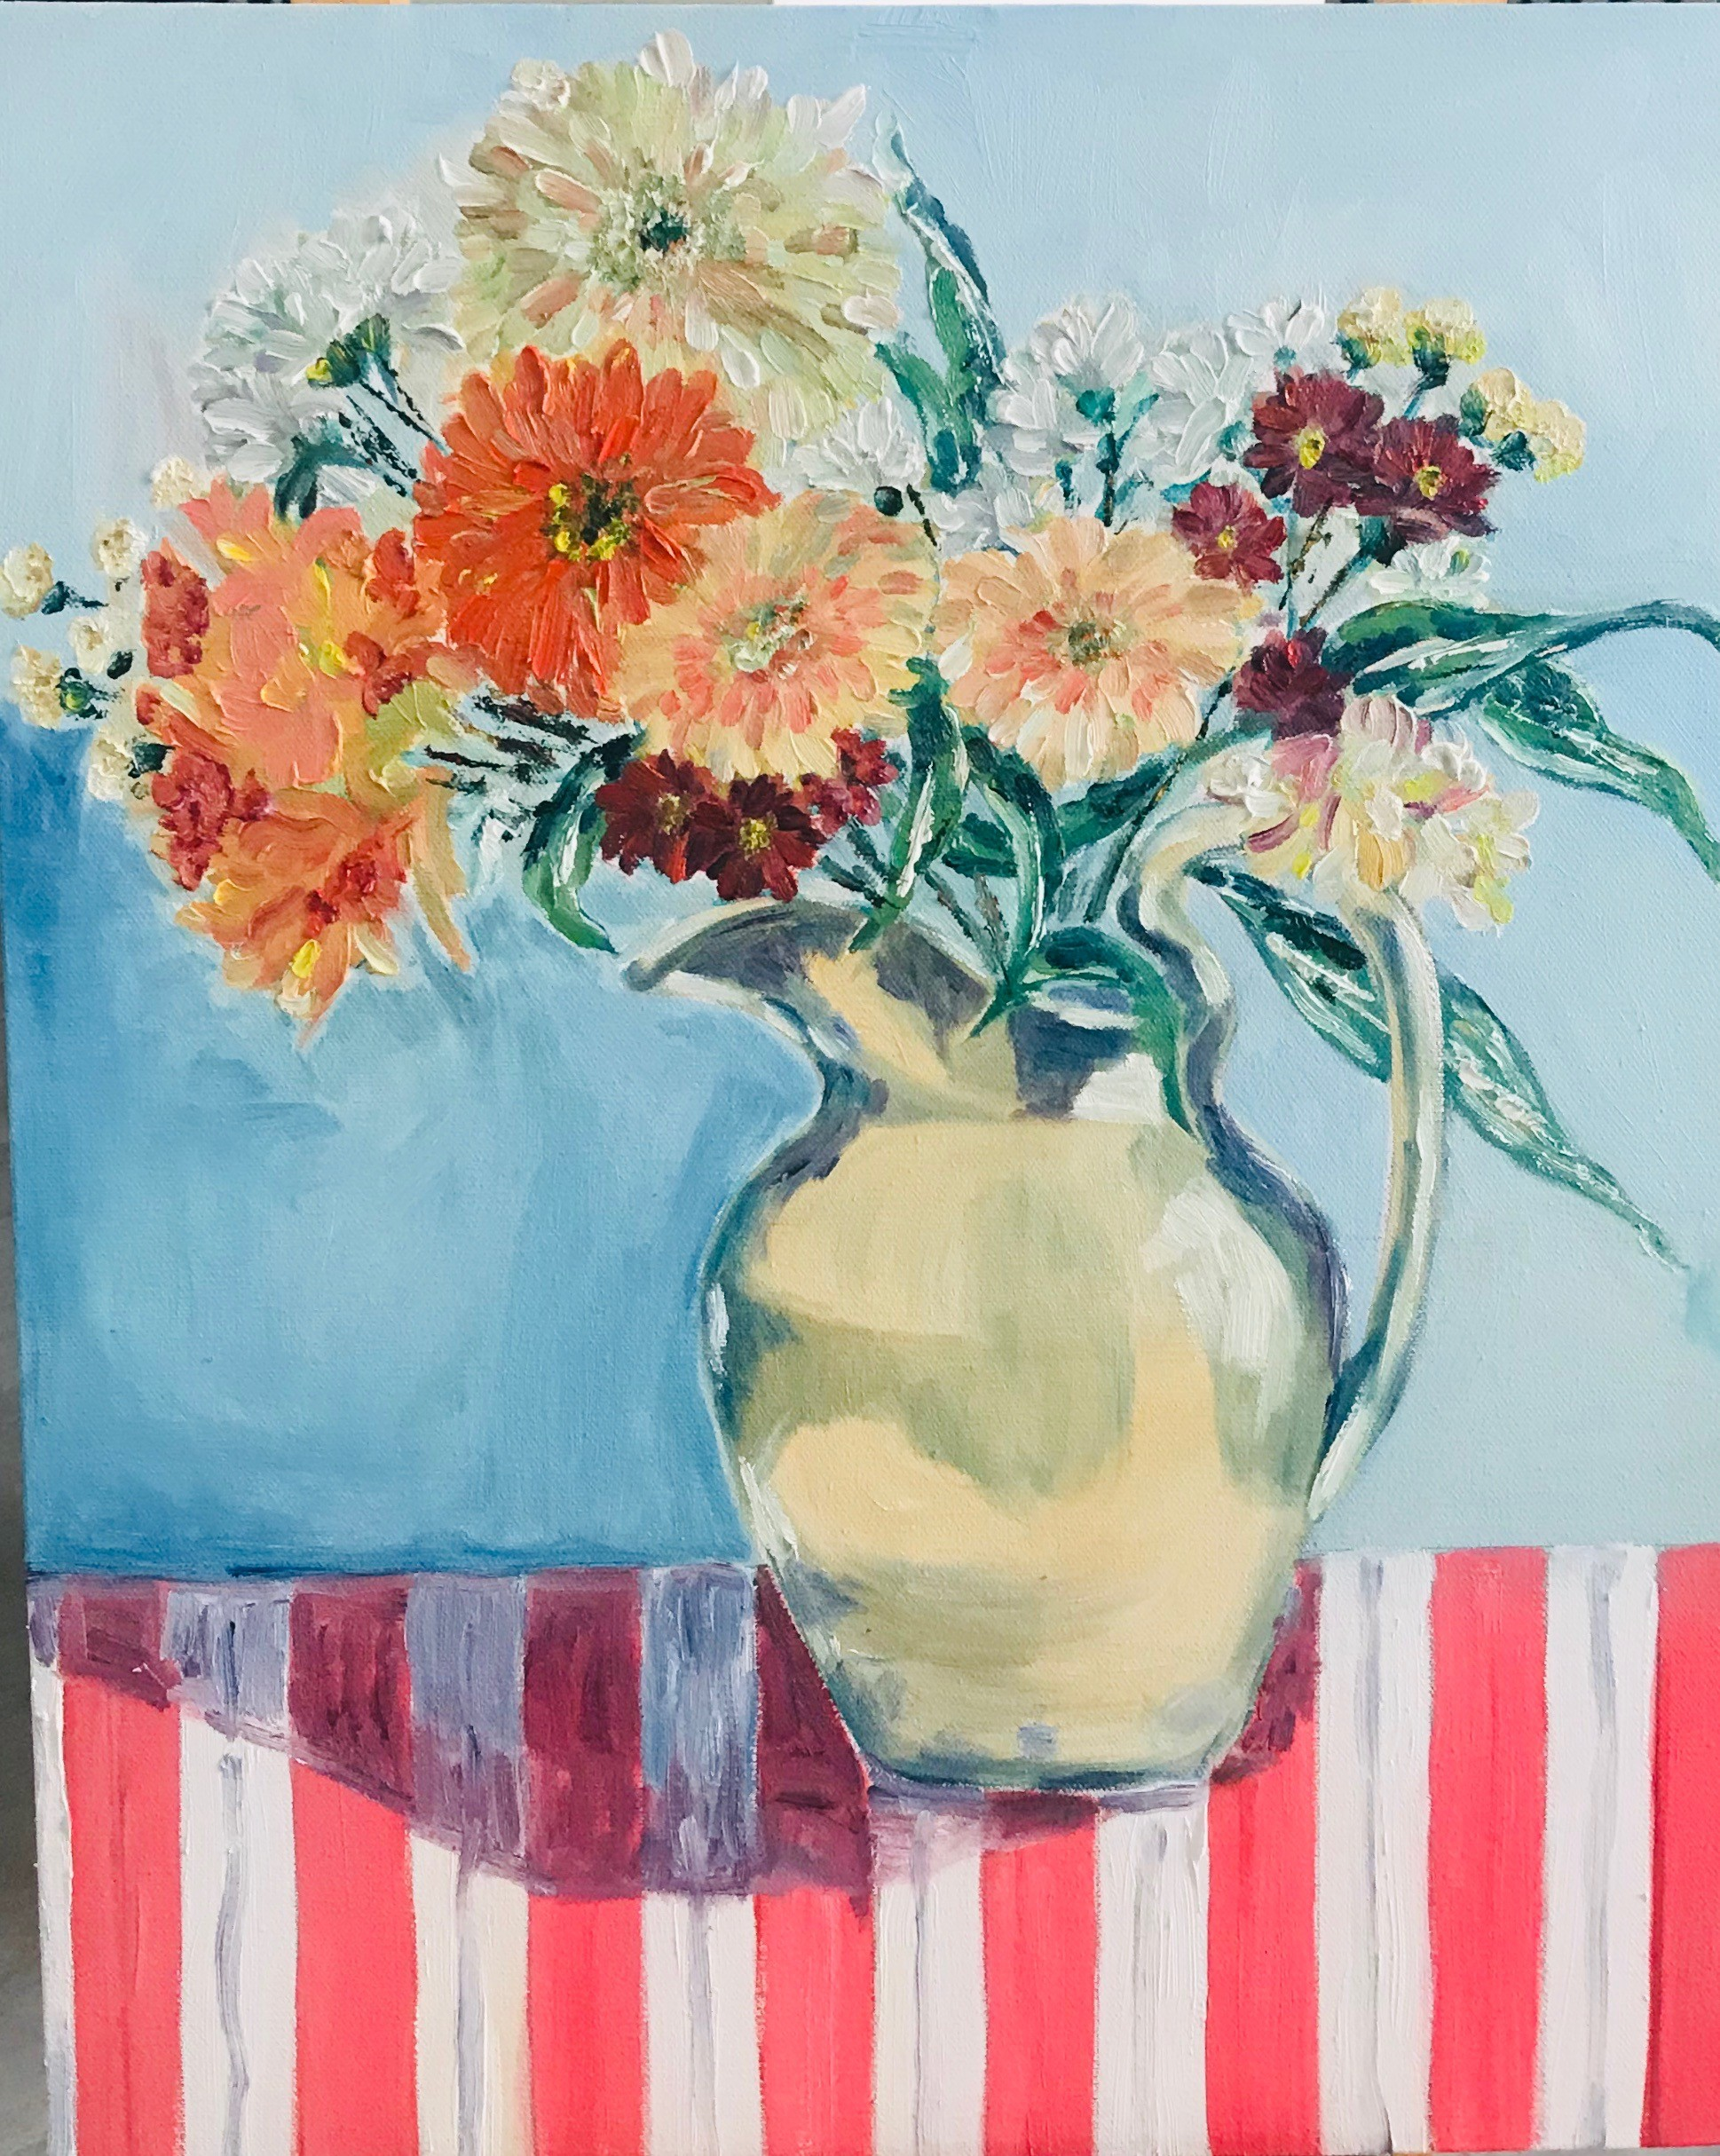 Flowers  in a pitcher by Thilini De Simon